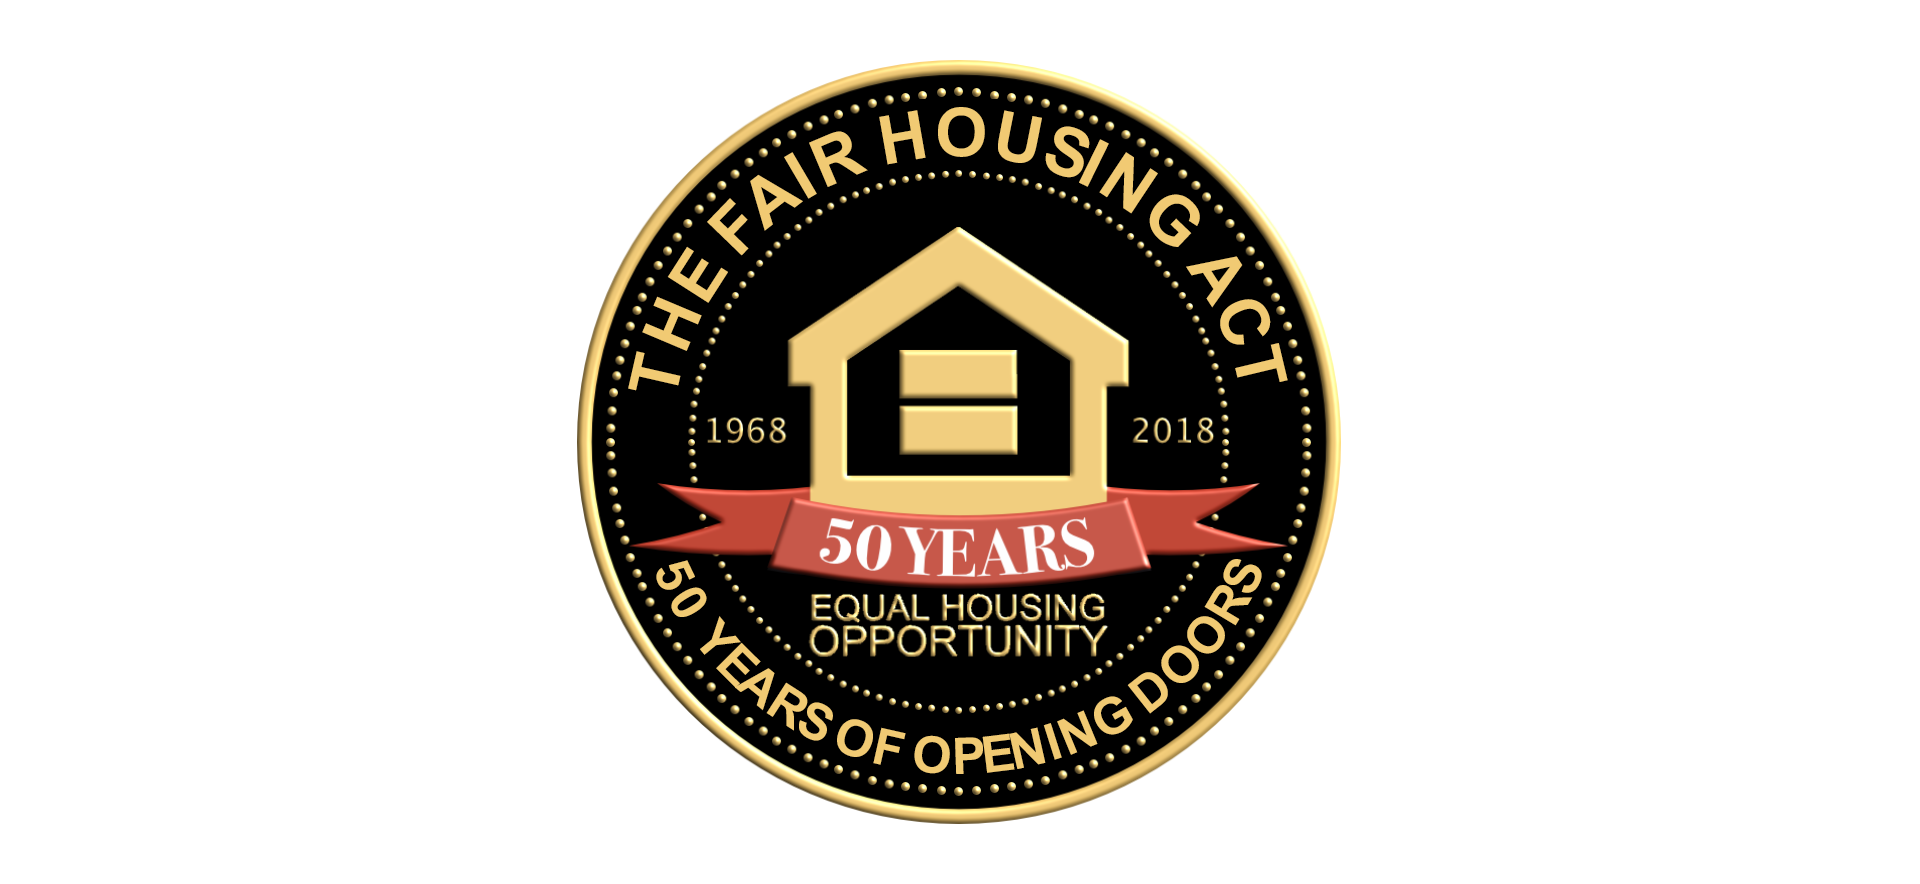 housing and urban development hud The mission of the department of housing and urban development (hud) is to  create strong, sustainable, inclusive communities and quality affordable homes.